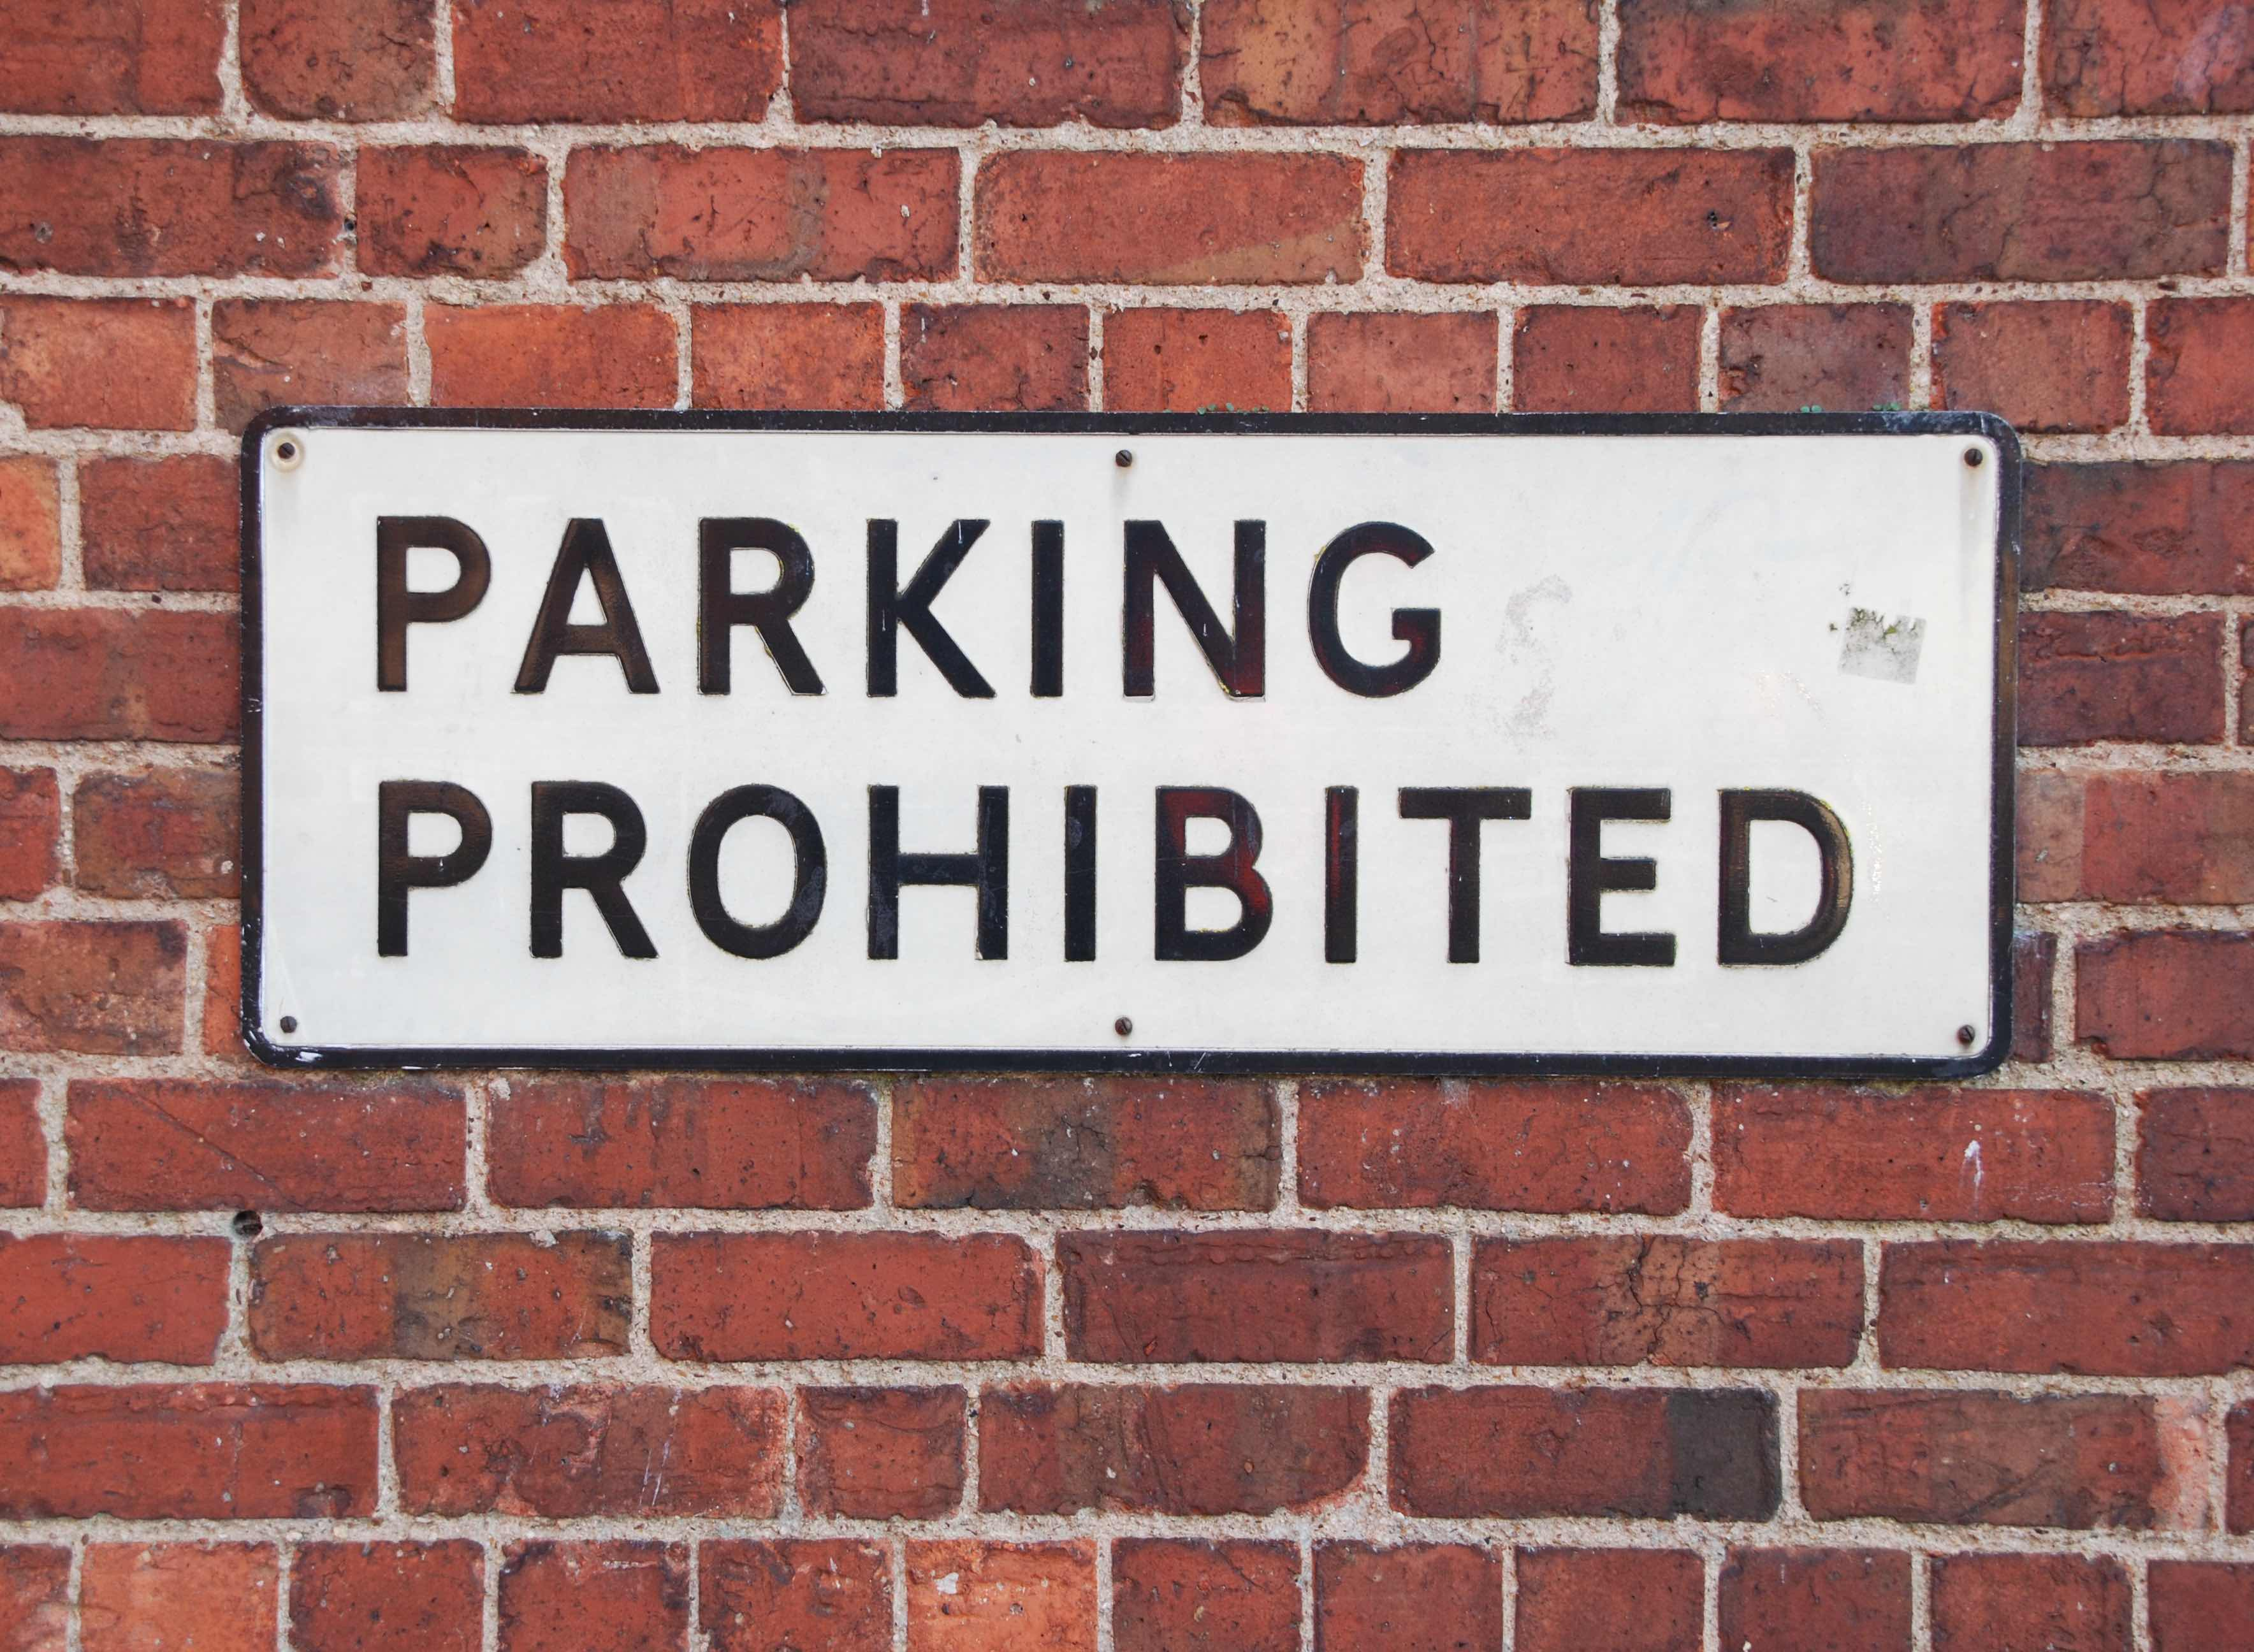 parking prohibited vintage sign at a red brick wall background